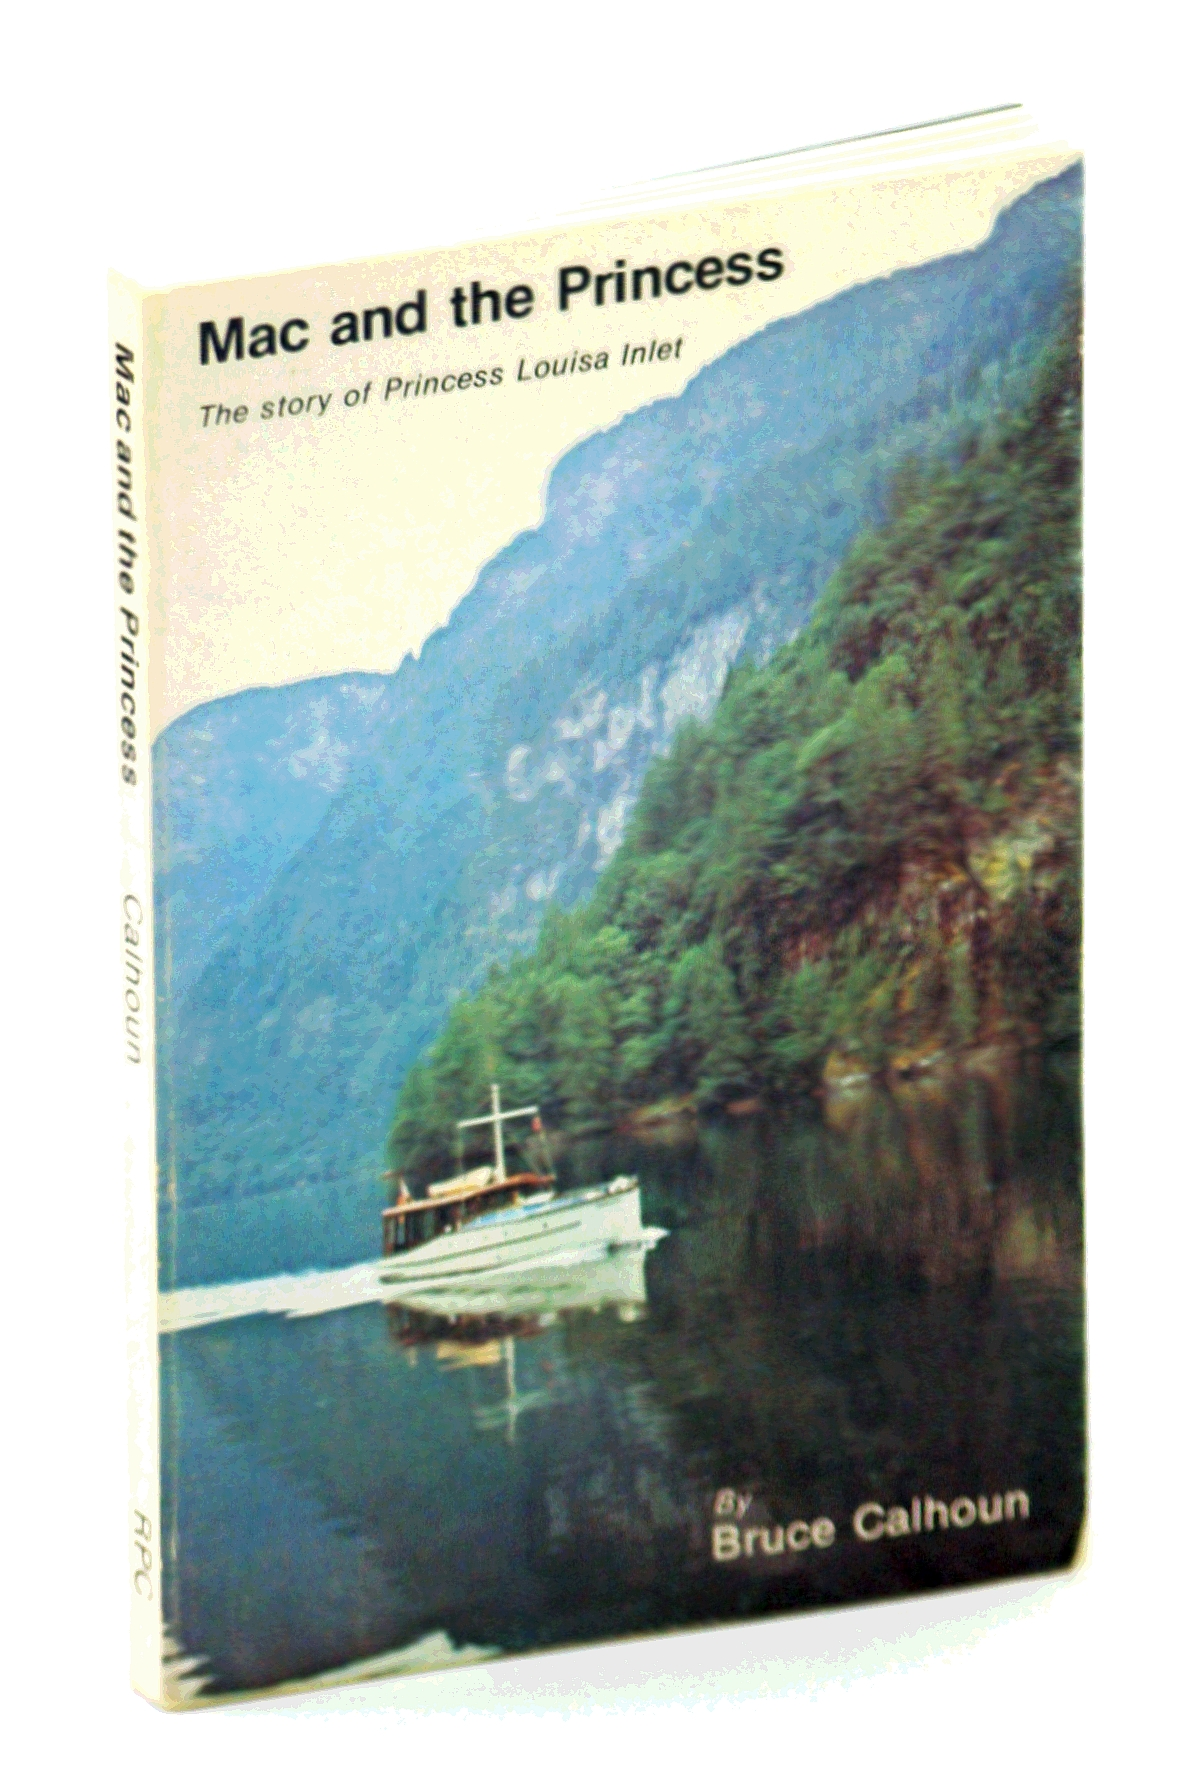 Image for Mac and the Princess: The Story of Princess Louisa Inlet and James F. MacDonald